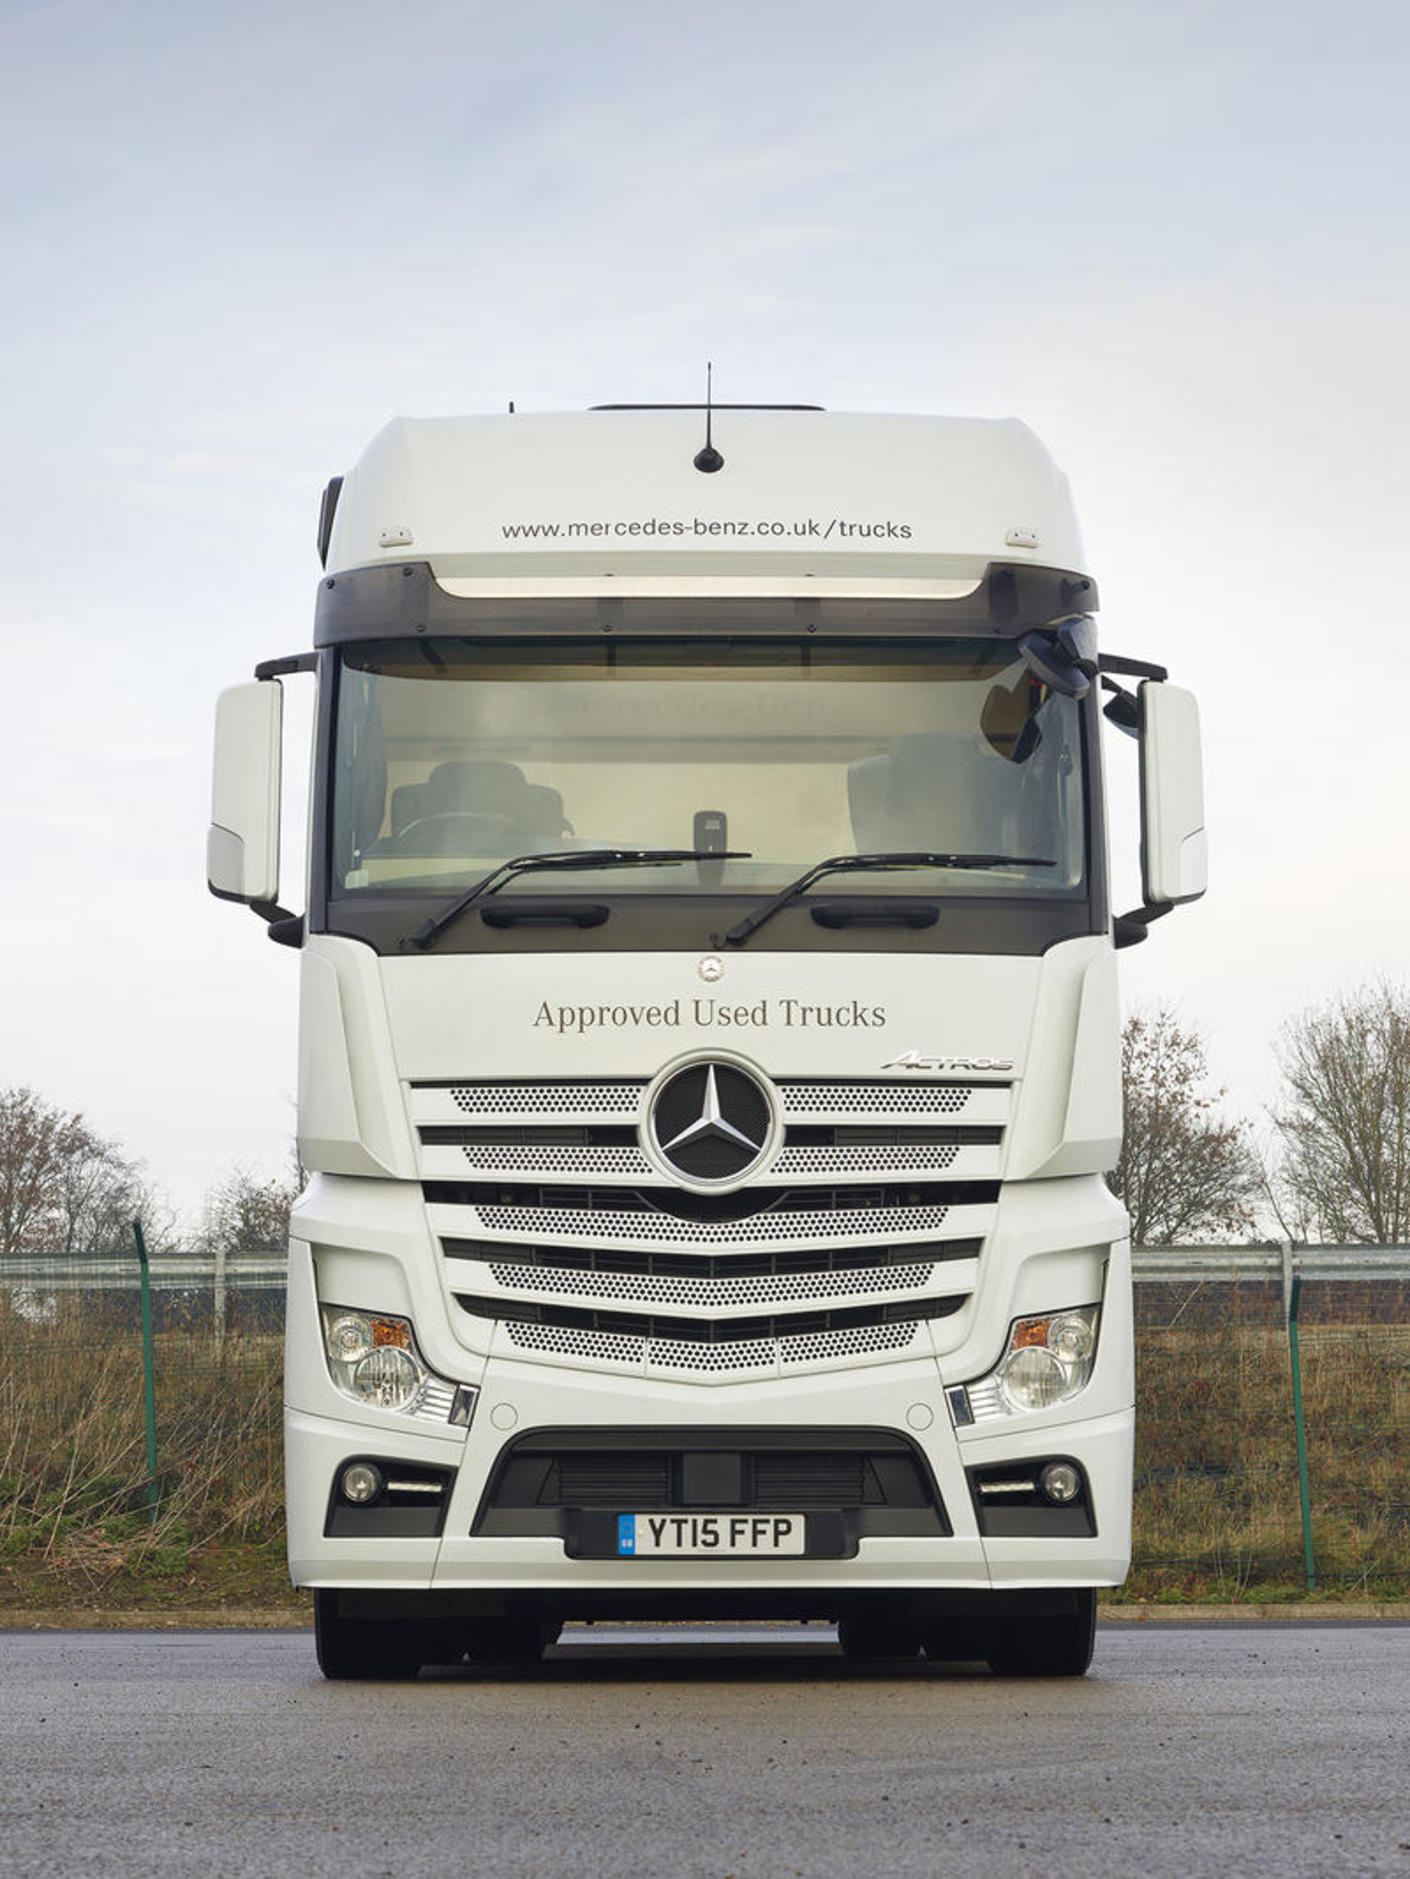 Mercedes-Benz Actros problems to look for when buying a used